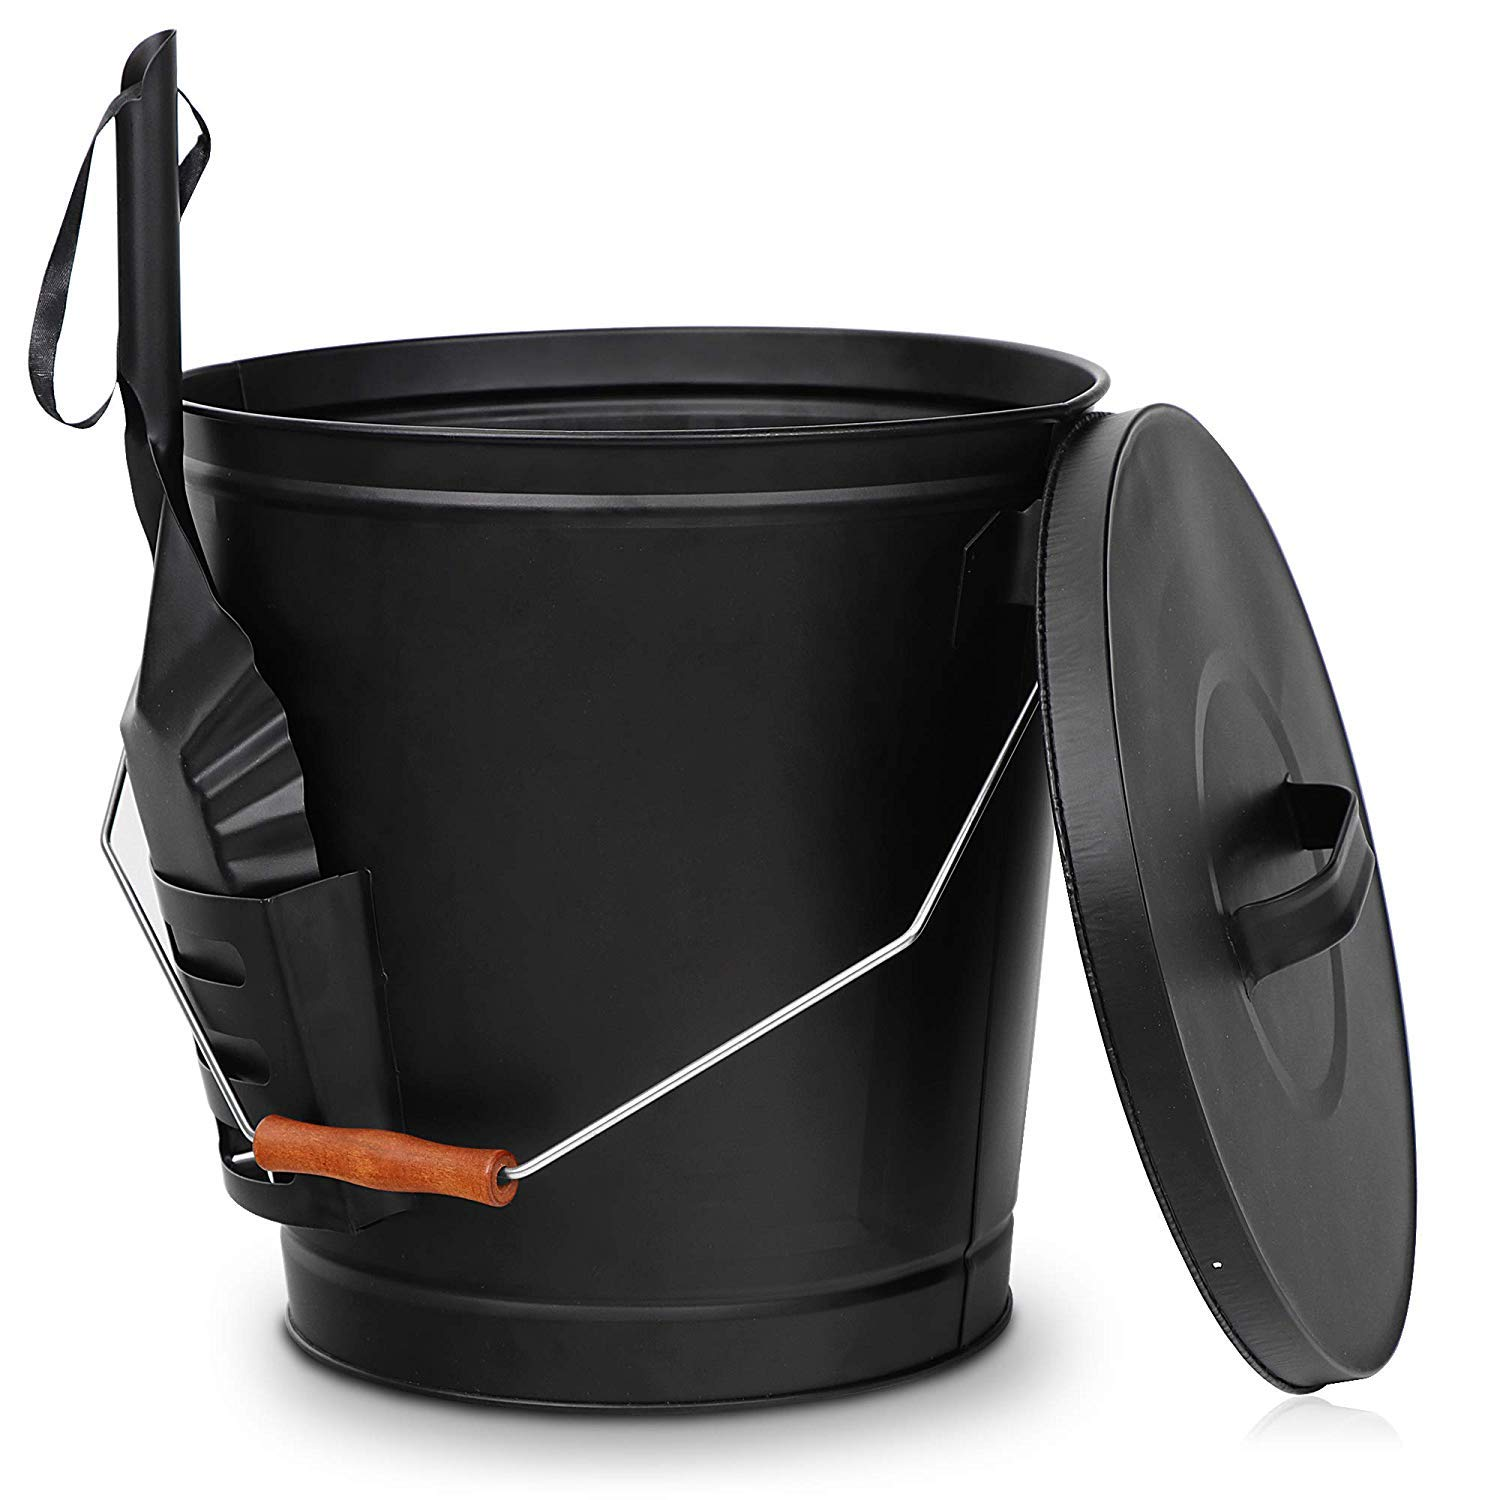 Nouva Galvanized Ash Bucket with Shovel and Lid,5.15 Gallon Large Metal Hot Wood Ash Carrier Pail Fireplace Tools,Fire Pit,Wood Burning Stove Black by Nouva